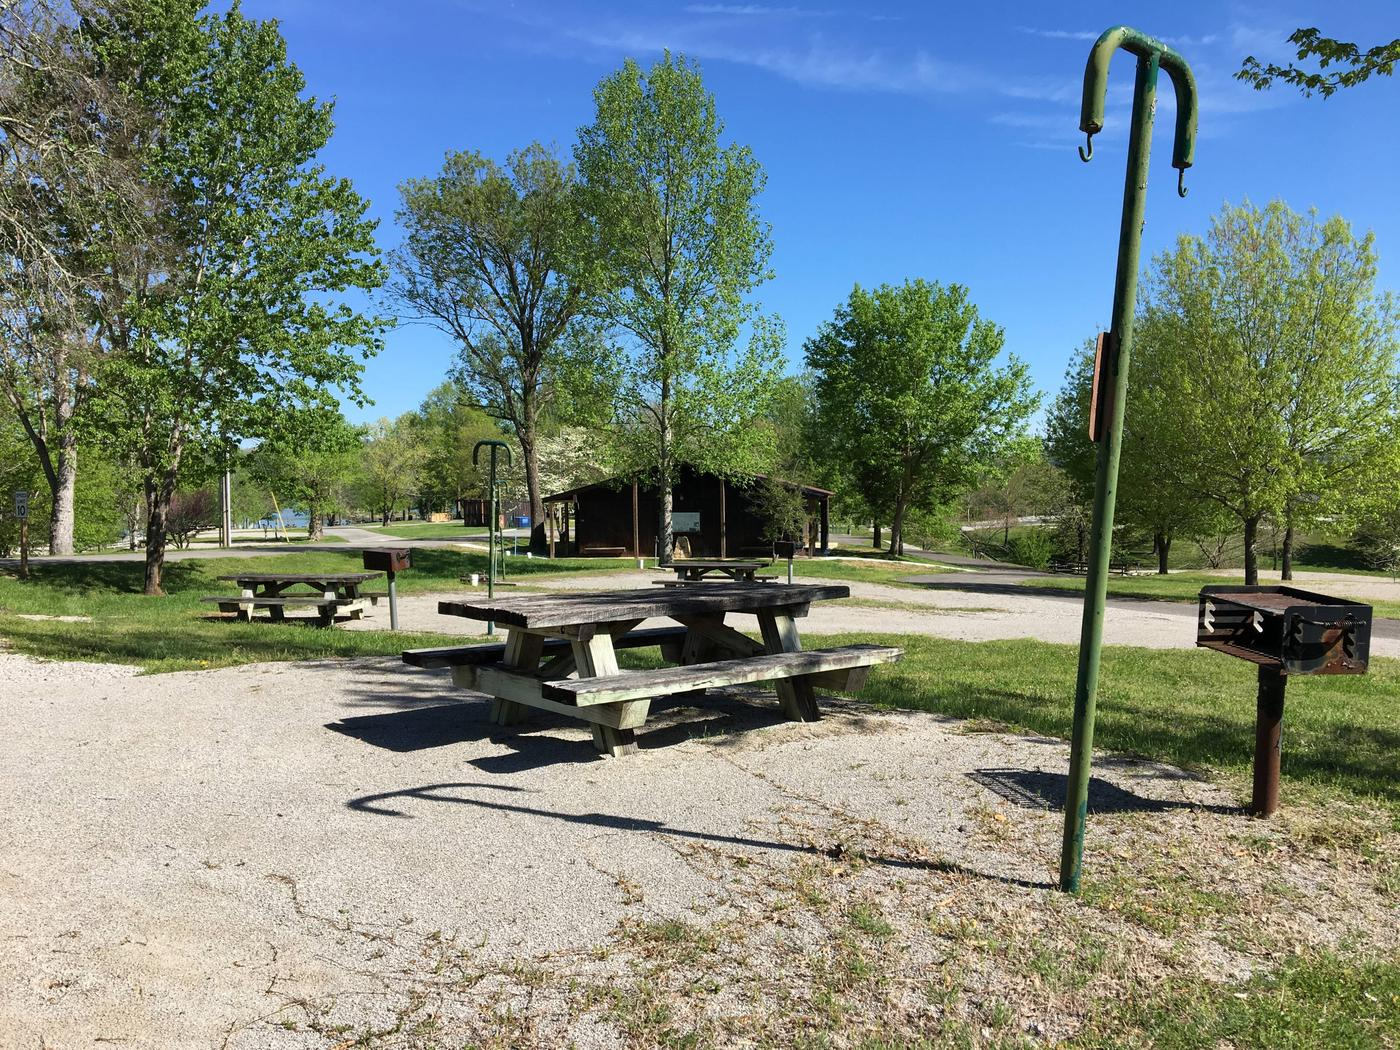 LILLYDALE CAMPGROUND SITE #1